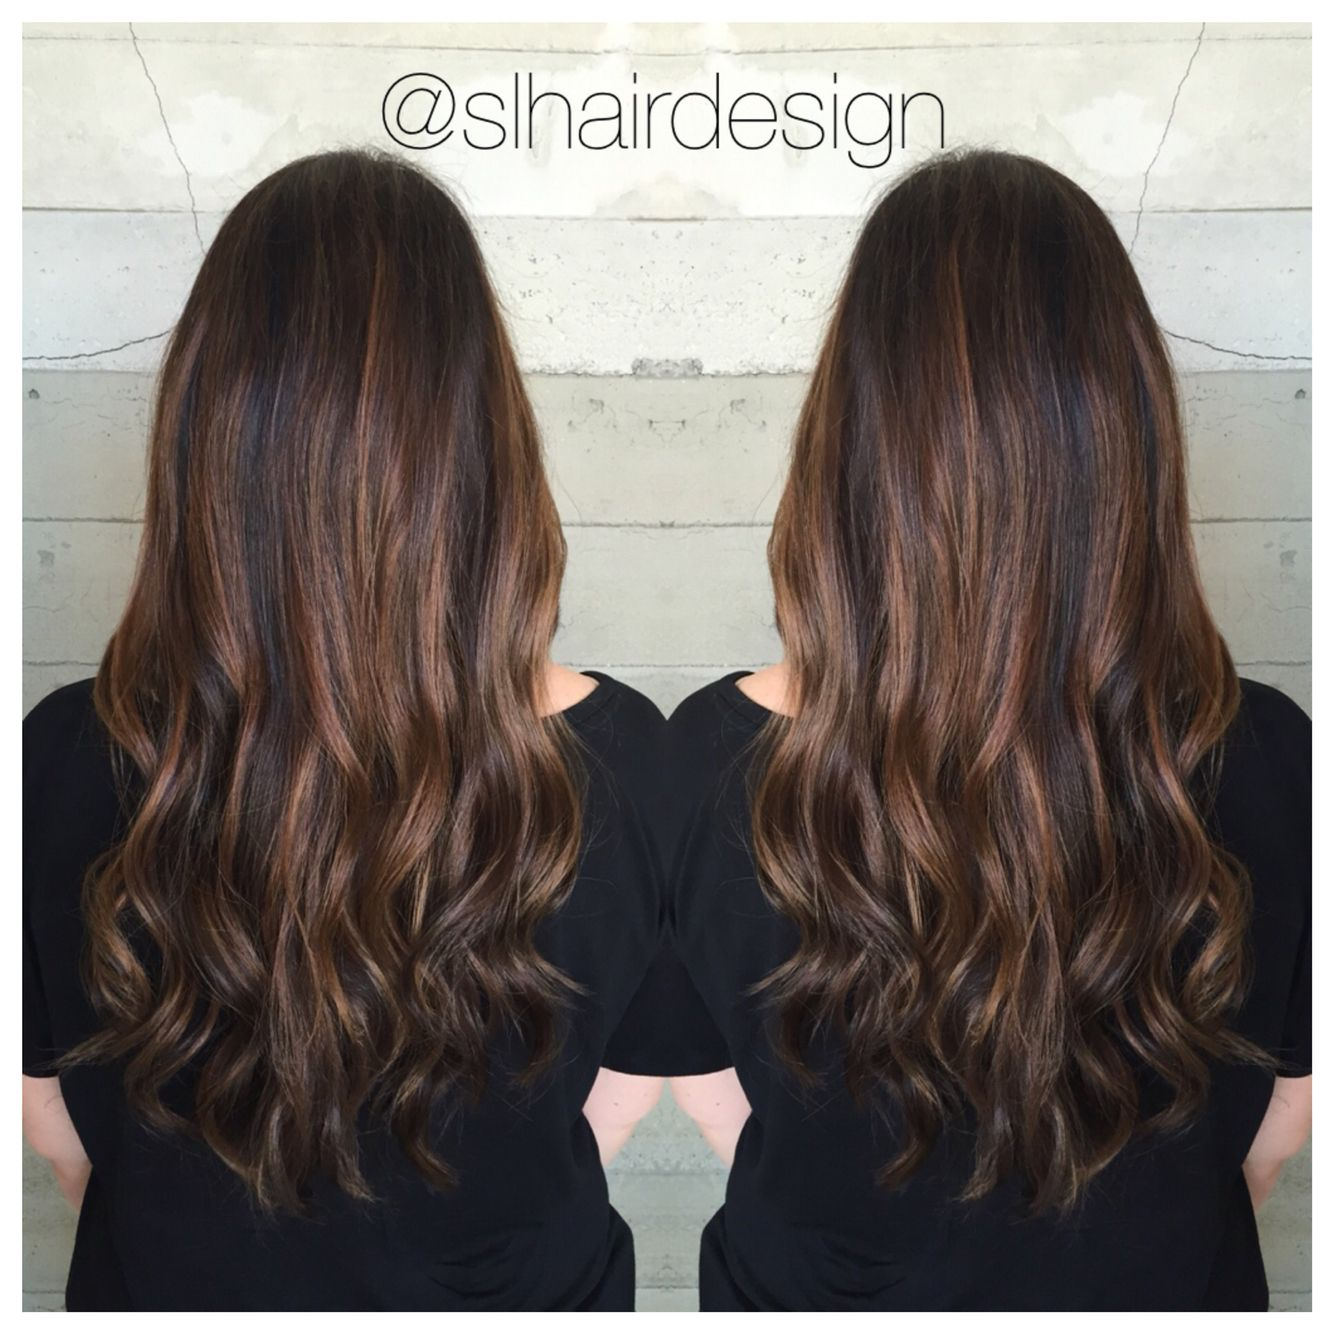 Natural Caramel Balayage Highlights By Stephanie Lopez Slhairdesign At Butterfly Loft Salon Caramel Balayage Balayage Highlights Balayage